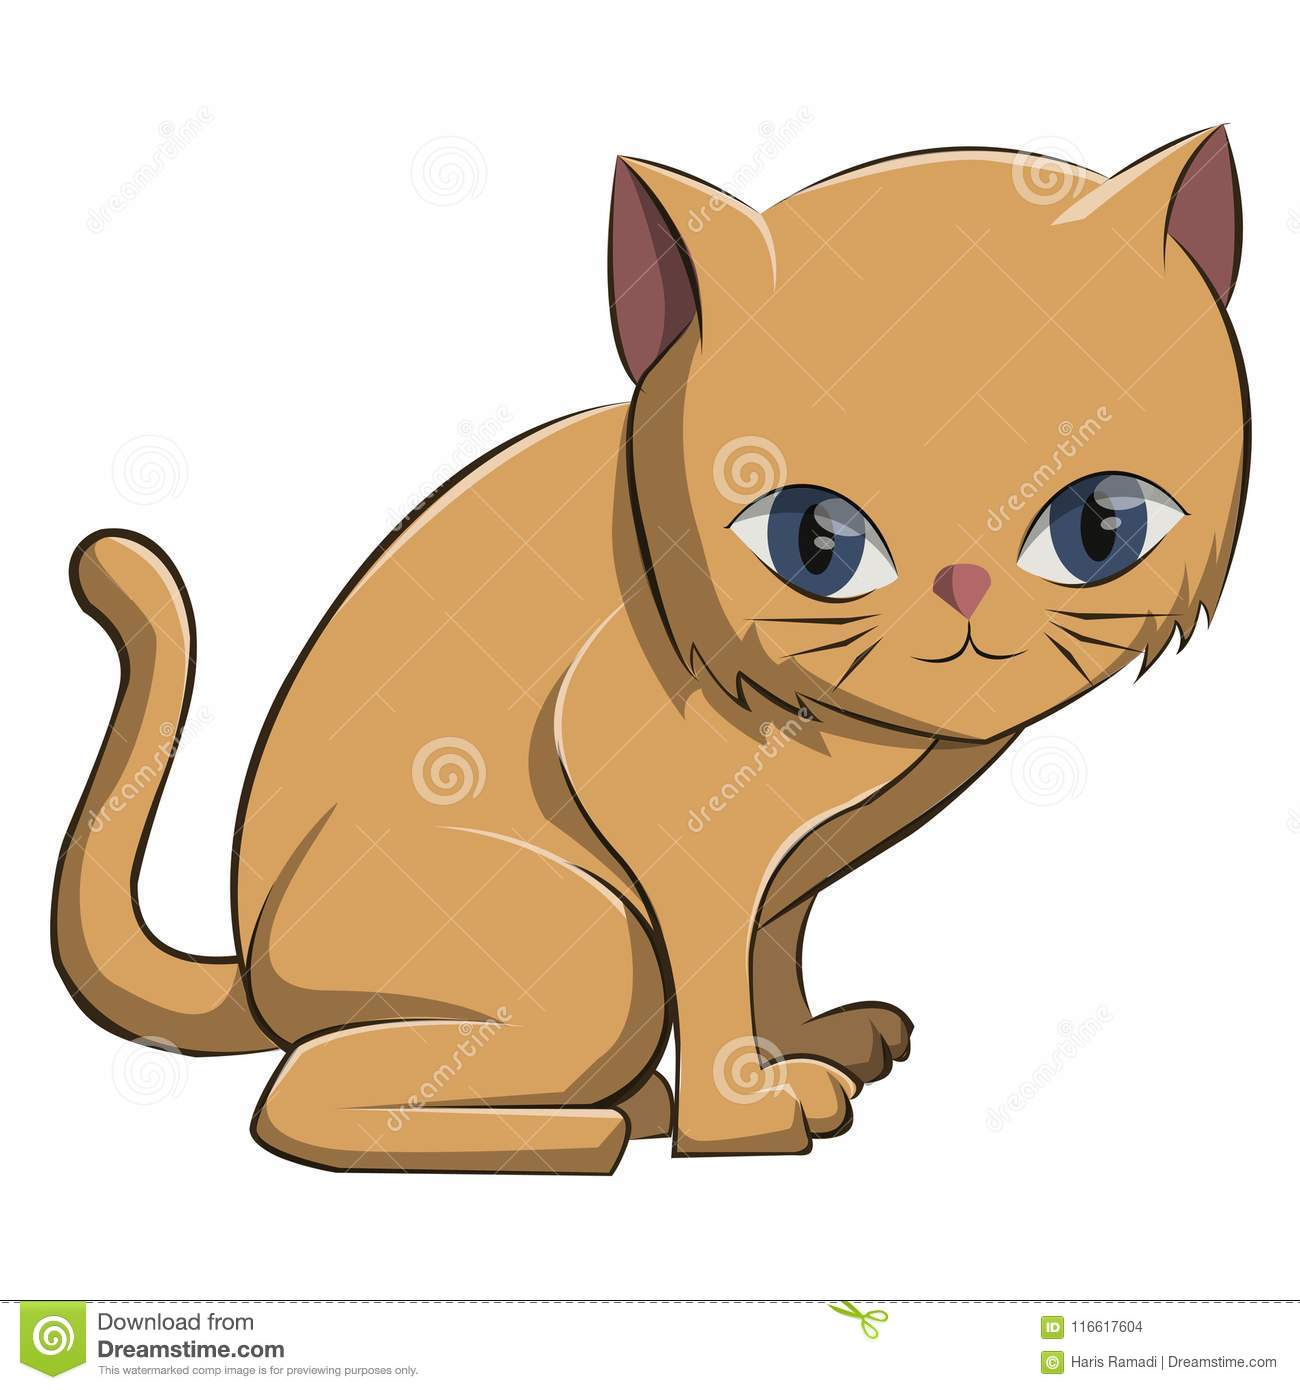 kucing stock illustrations 25 kucing stock illustrations vectors clipart dreamstime https www dreamstime com cute orange cat image illustrating funny orange cat sitting cute orange cat sitting meow image116617604